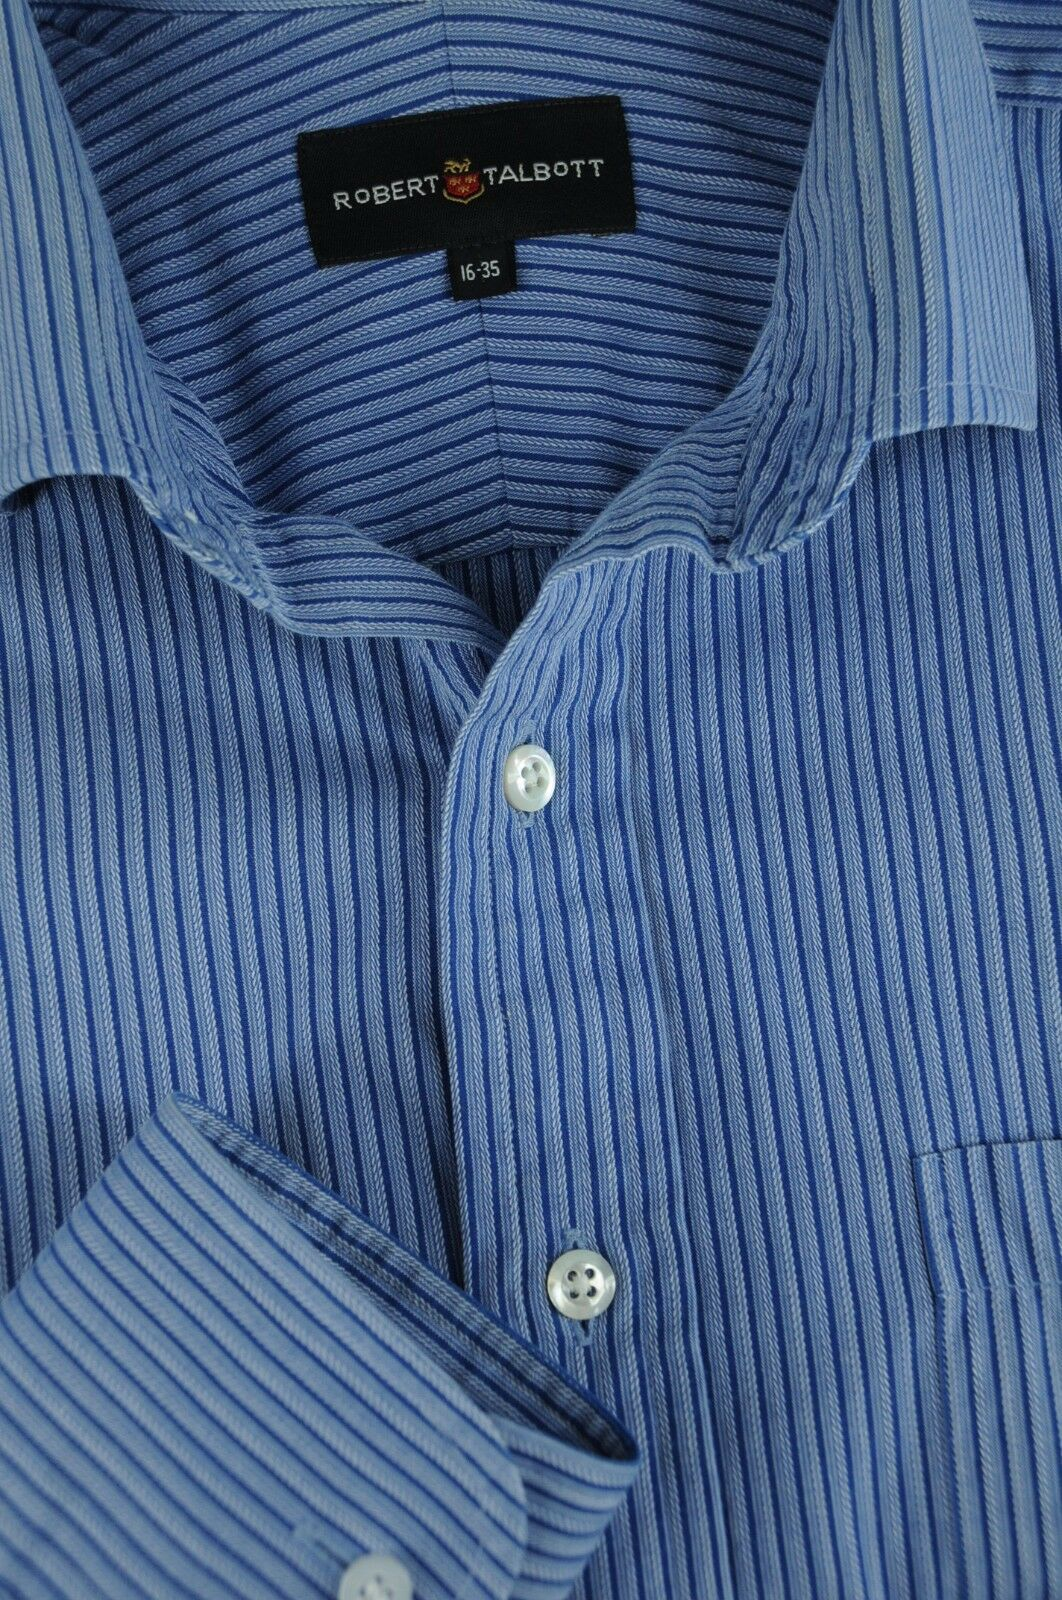 Robert Talbott Men's Royal bluee Striped Cotton Dress Shirt 16 x 35